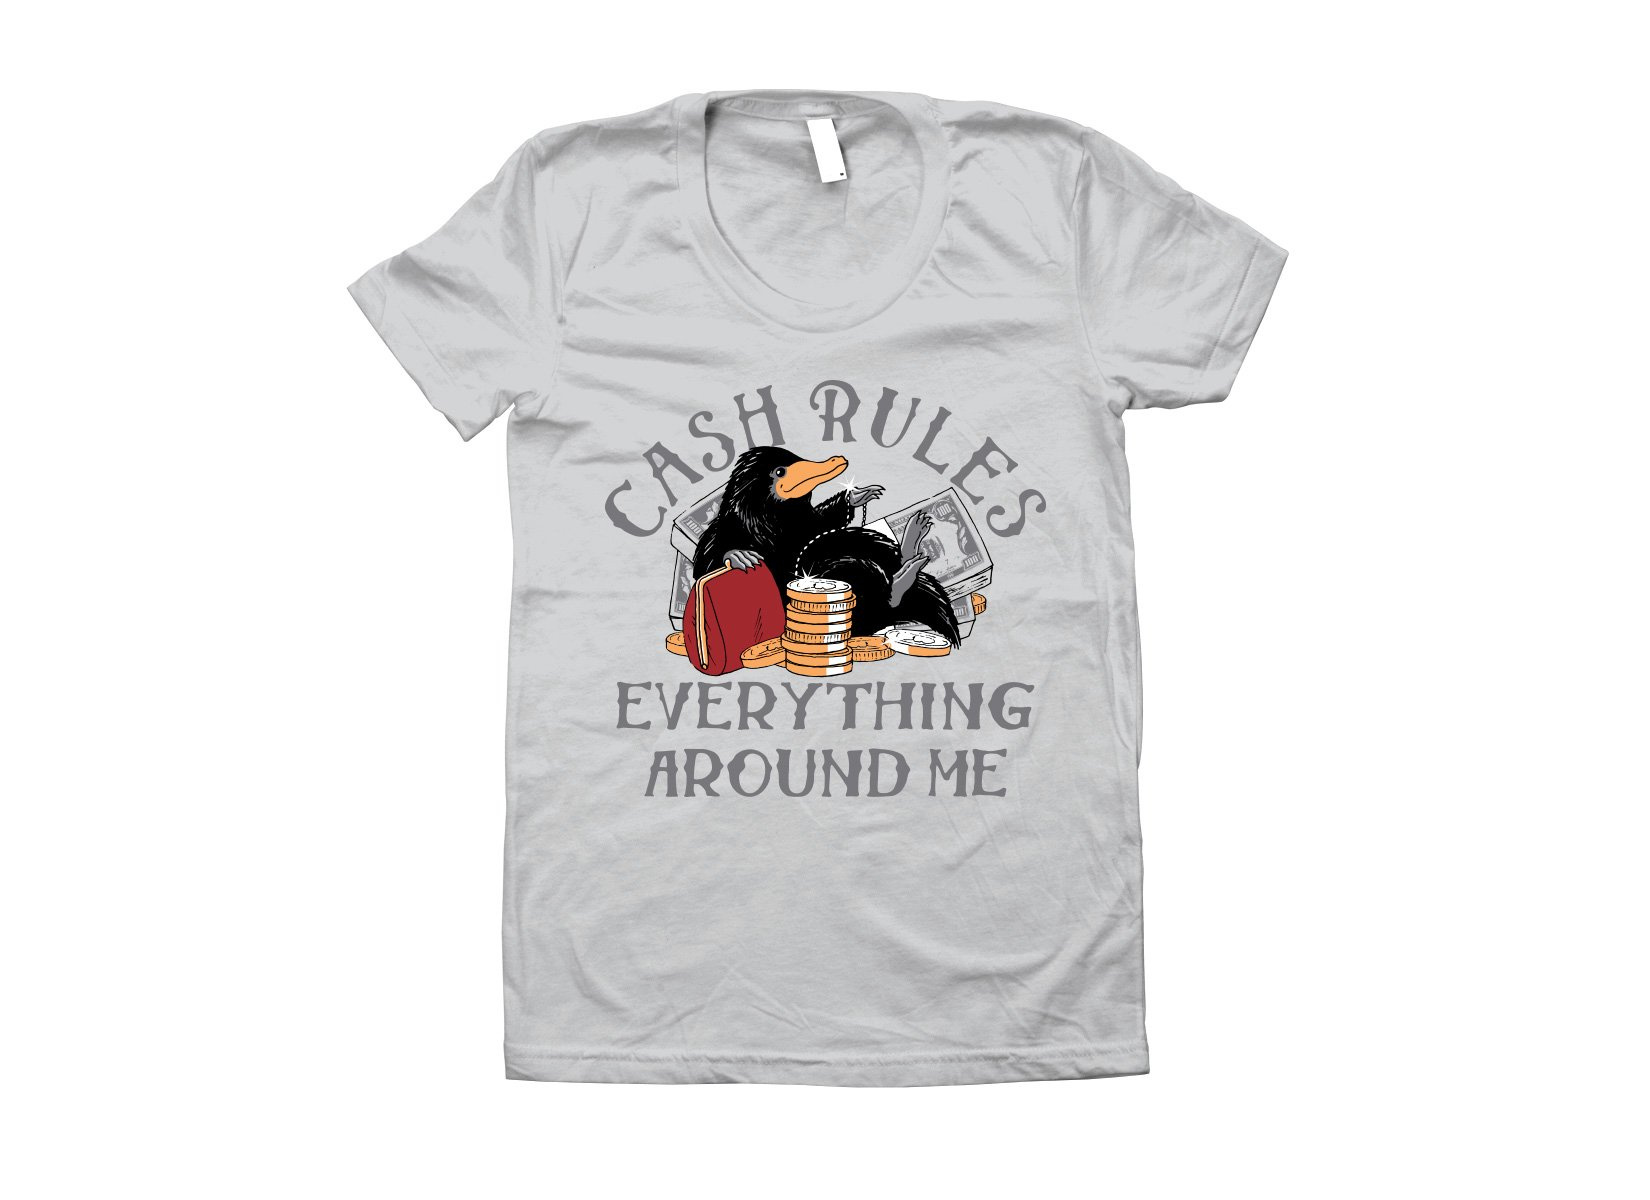 Cash Rules Everything Around Me on Juniors T-Shirt